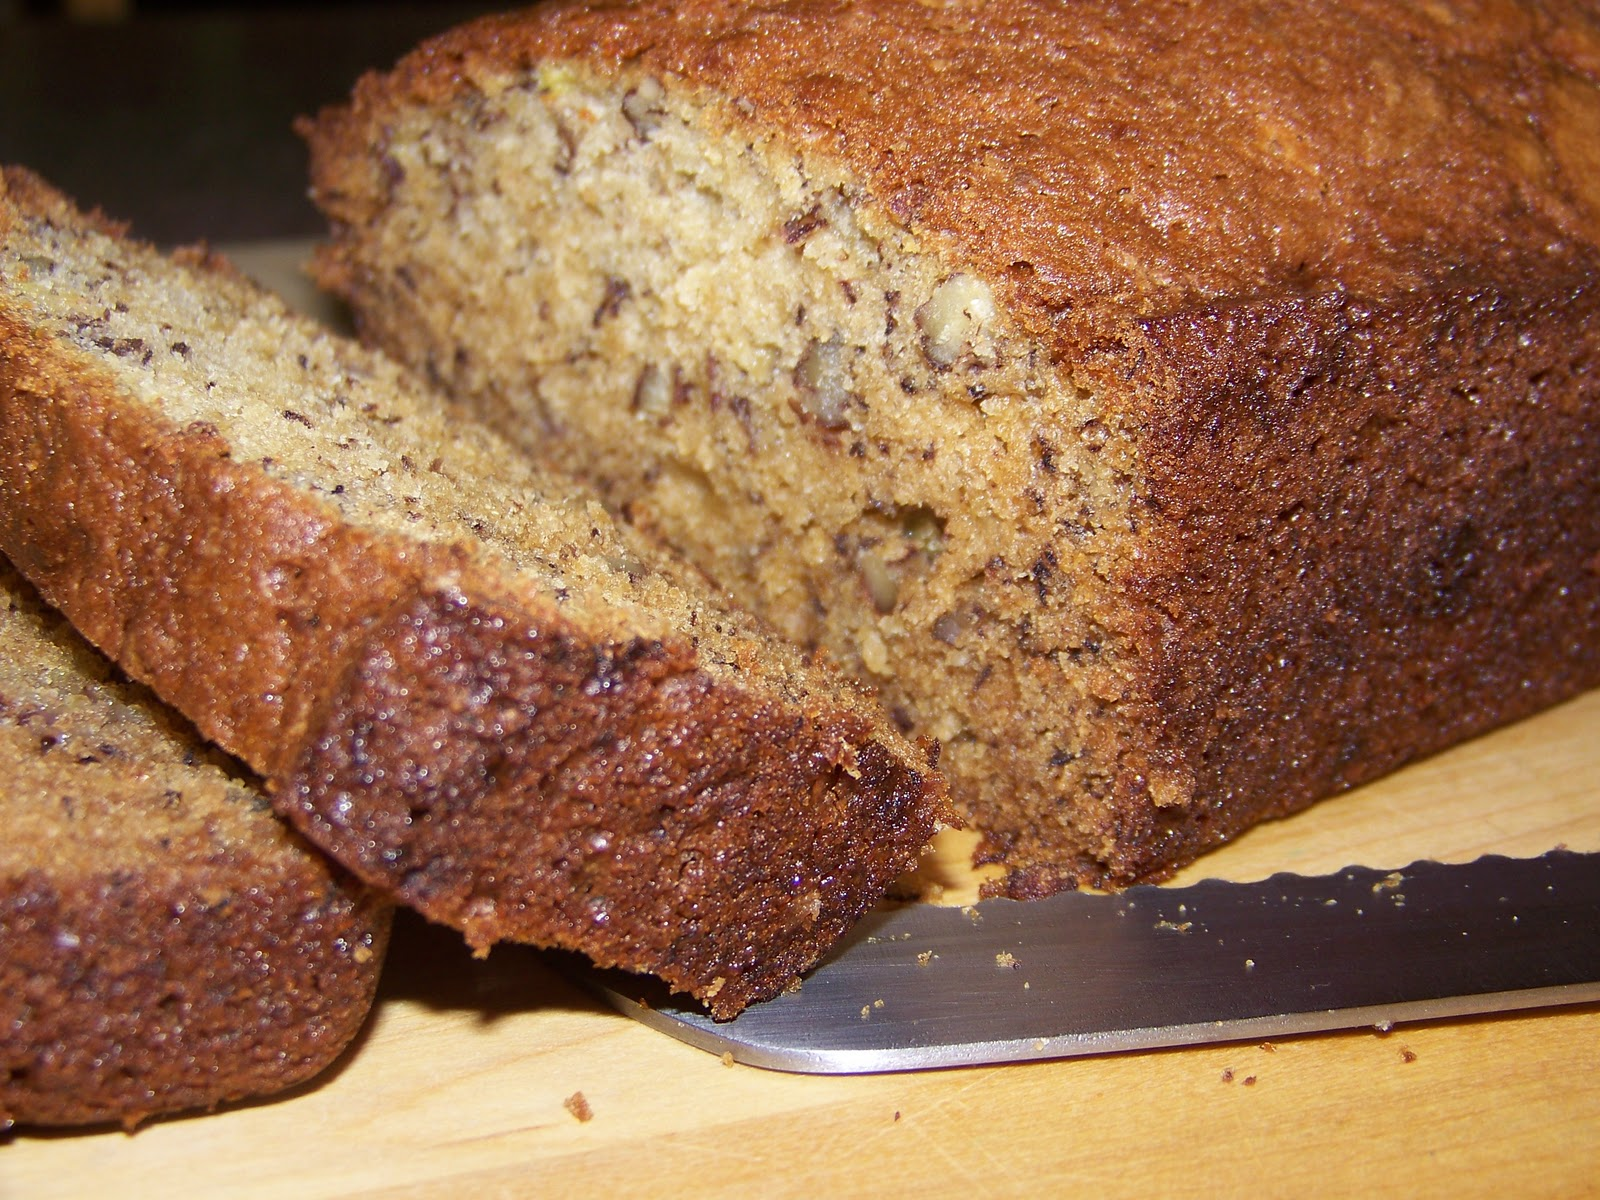 banana bread well here it is my banana bread recipe